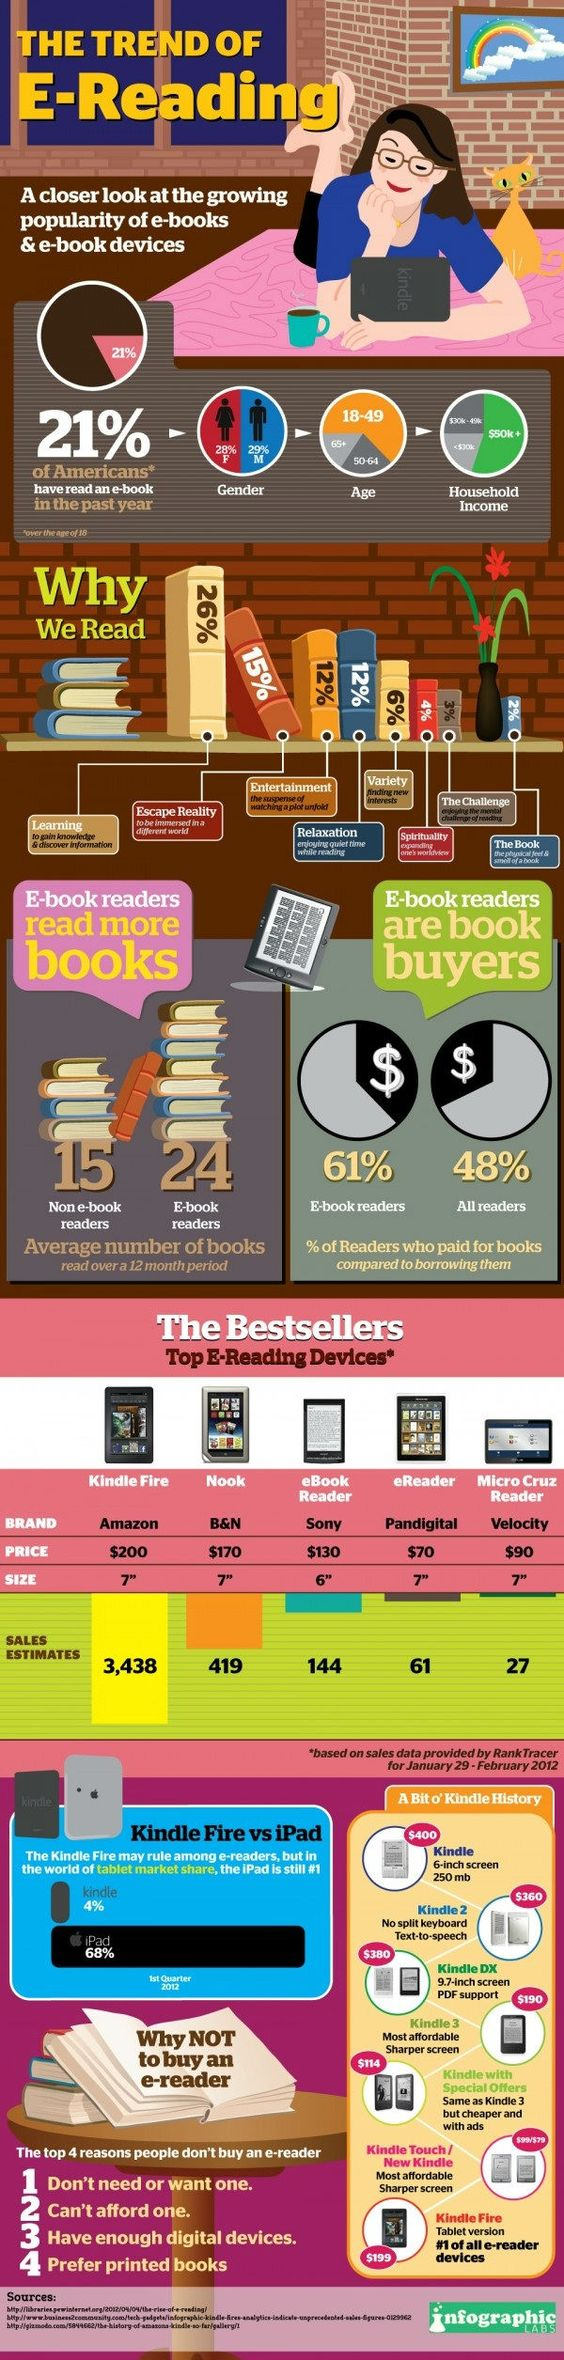 The Trend of E-Reading Infographic